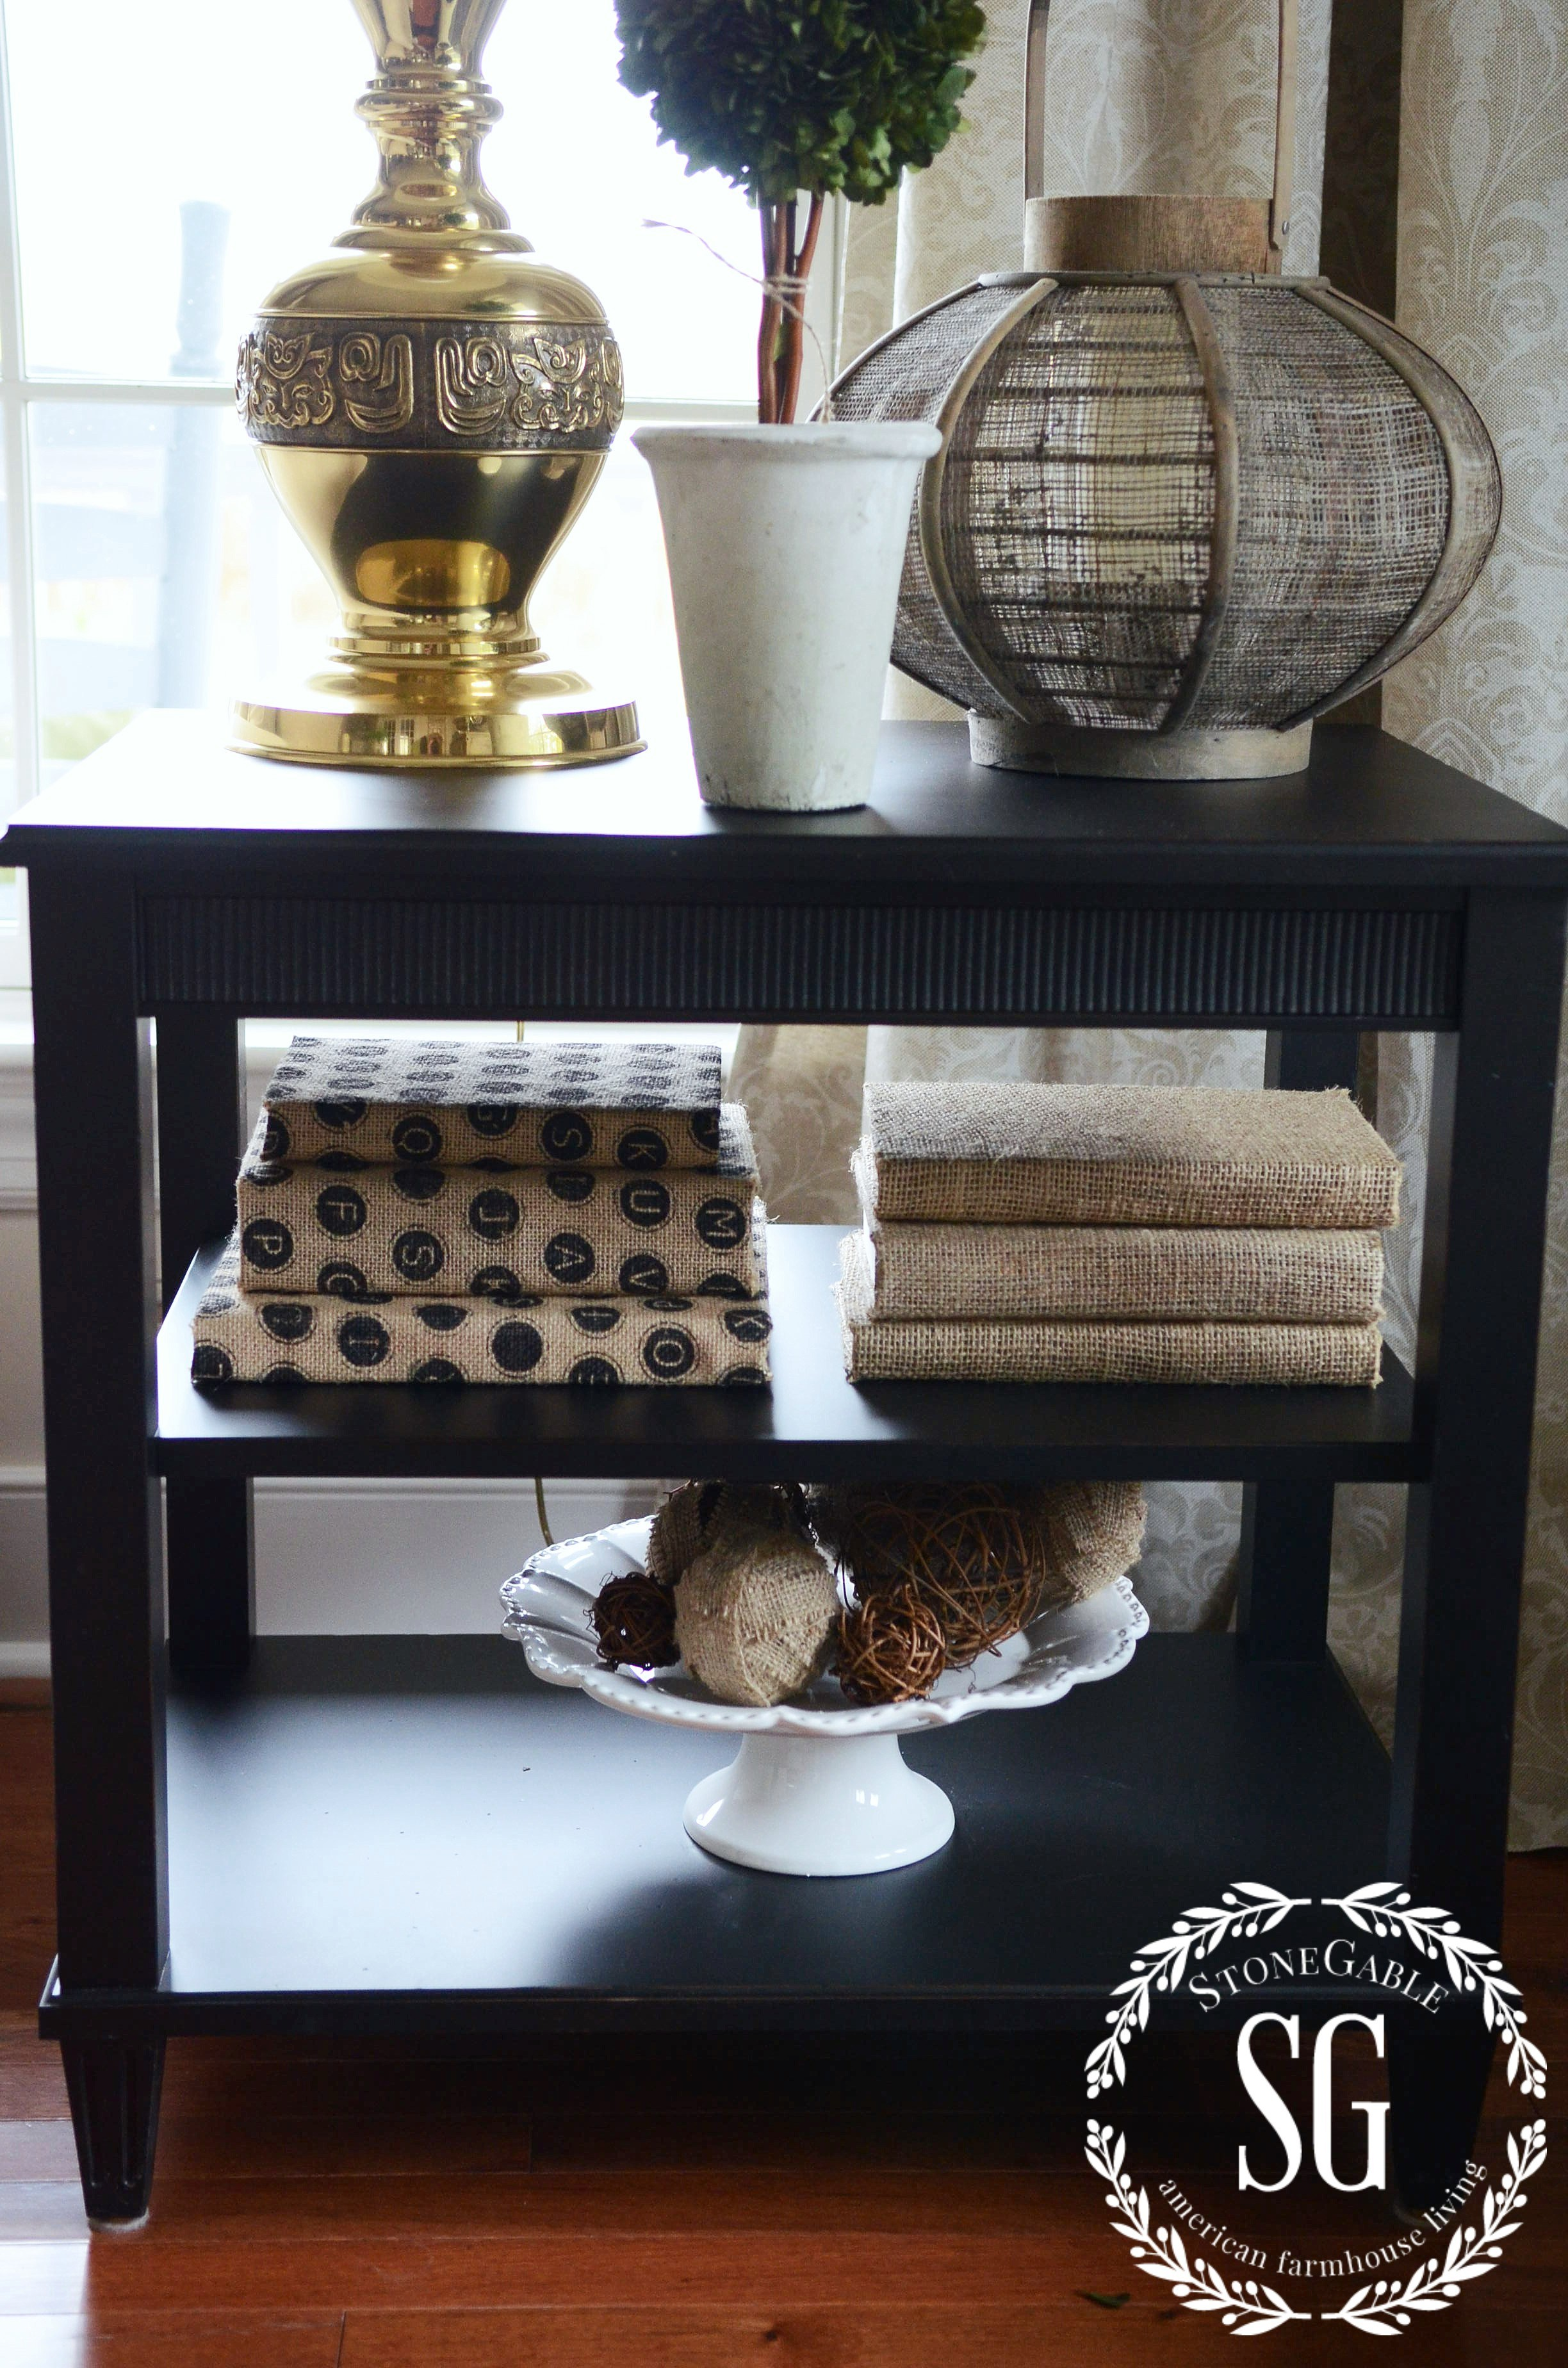 tips decorate accent table shelves like pro stonegable how under two stonegableblog end with shelf underneath small lamp ikea honby lobby coupon marble top side steve silver